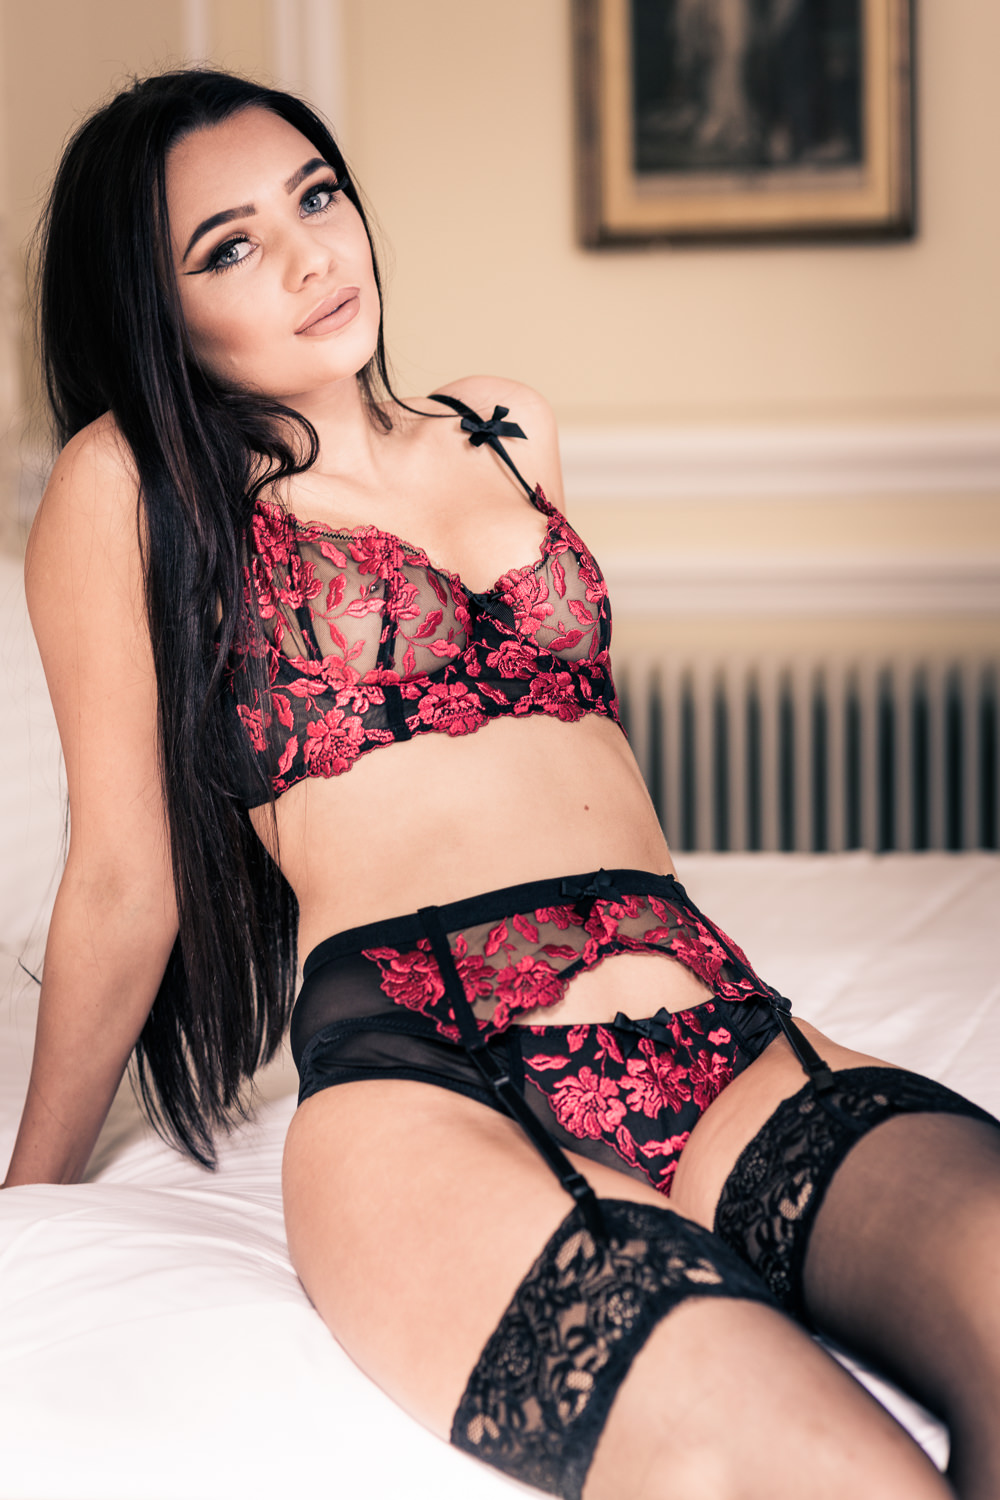 Newcastle boudoir photo shoot